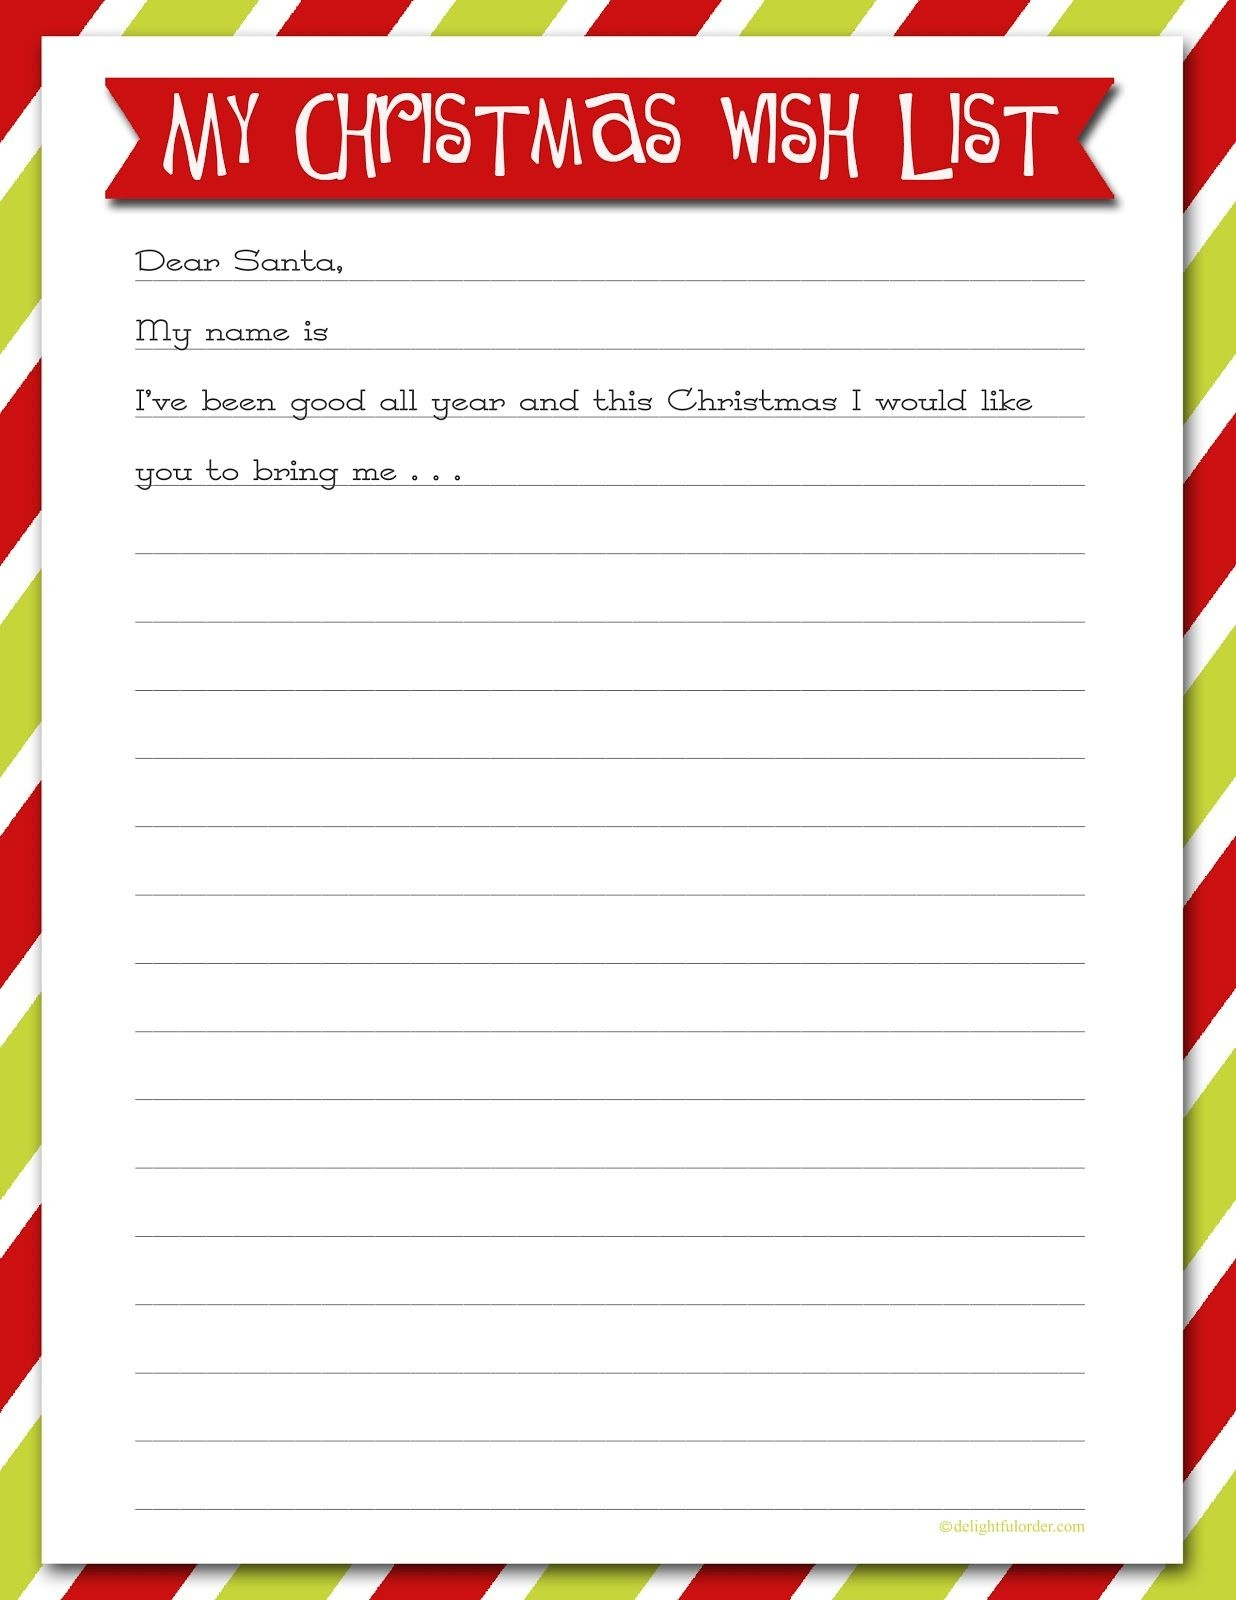 Delightful Order: Christmas Wish List - Free Printable | Delightful - Free Printable Christmas List Maker